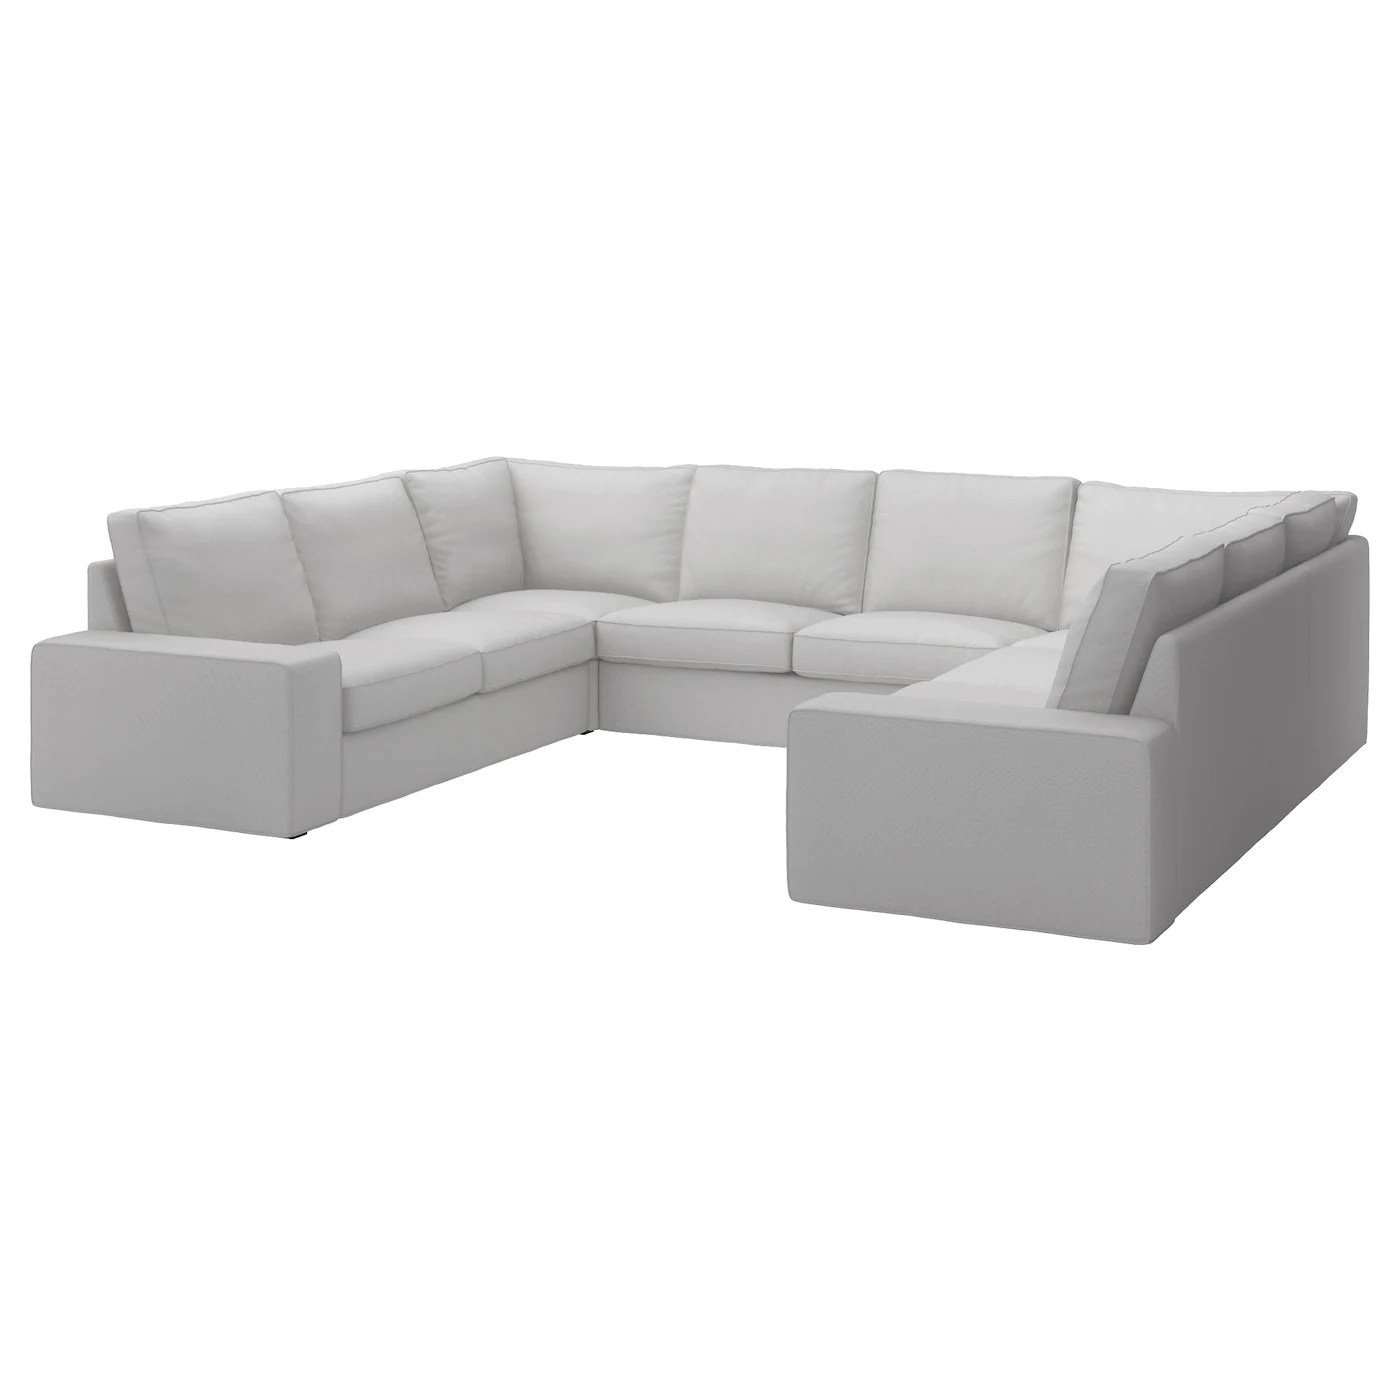 U Sofa Kivik U Shaped Sofa 6 Seat Orrsta Light Grey